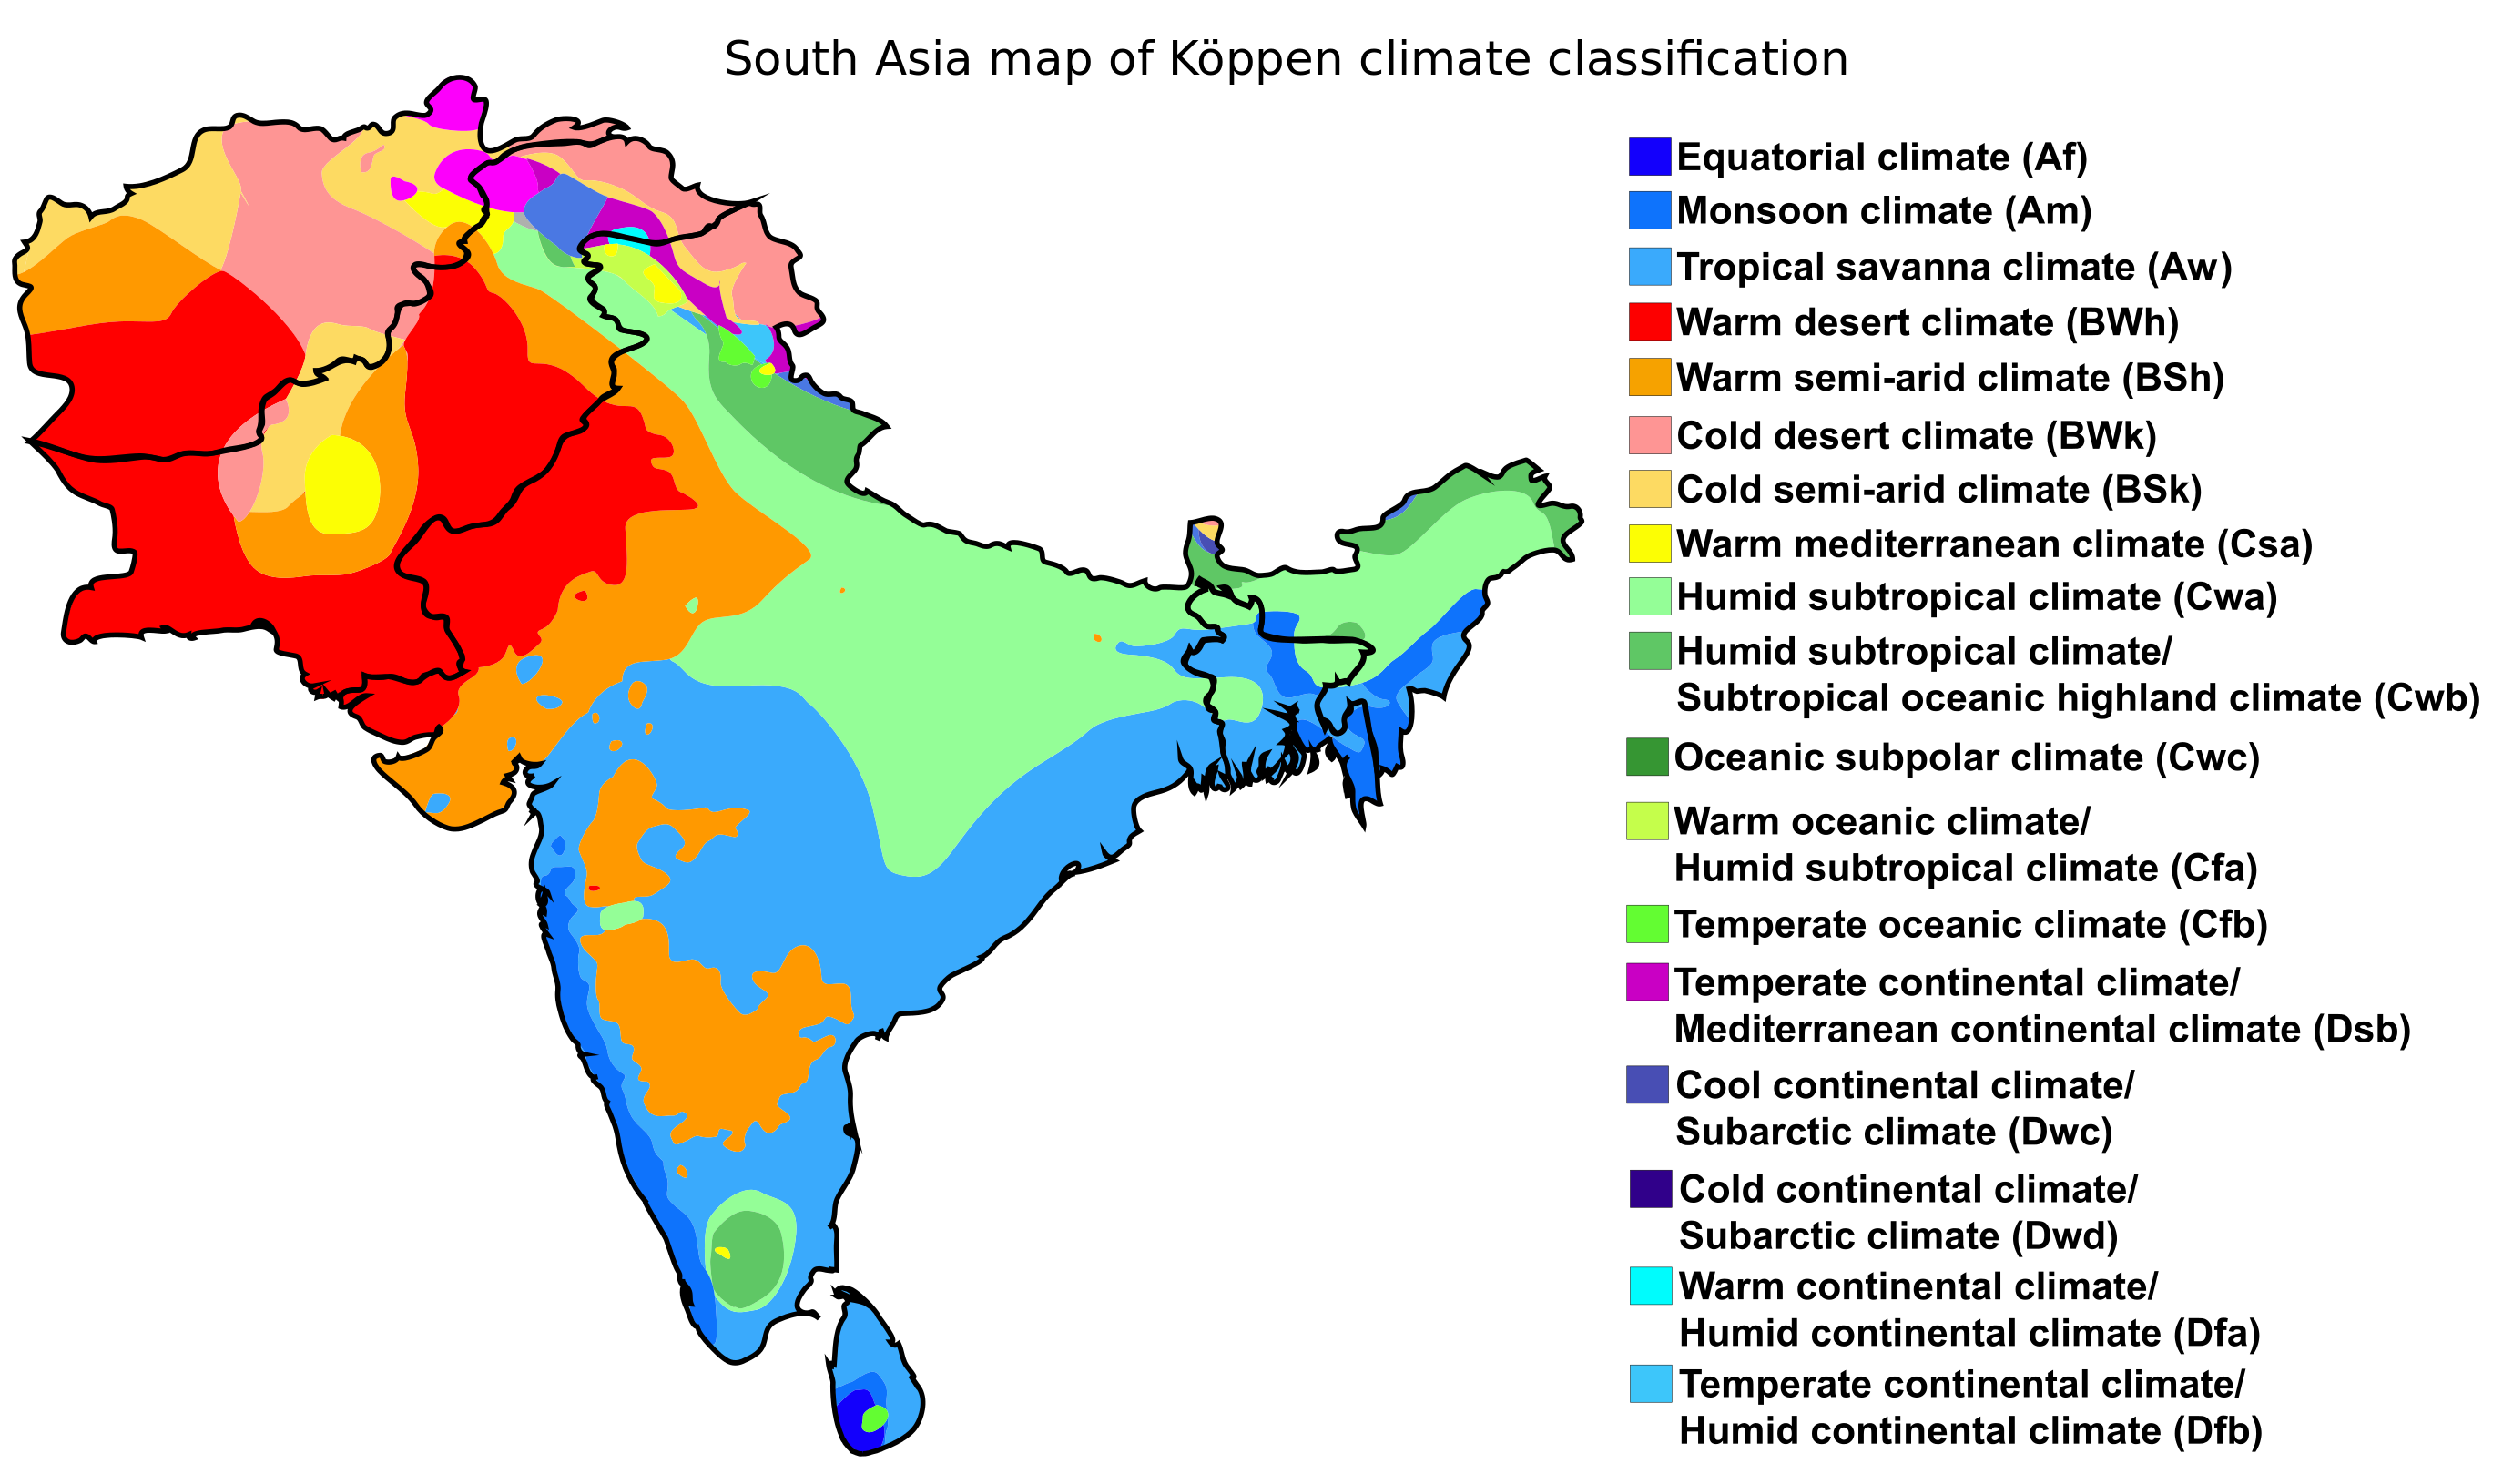 Climate Zone Map Of Asia.South Asia Map Of Koppen Climate Classification Koppen South